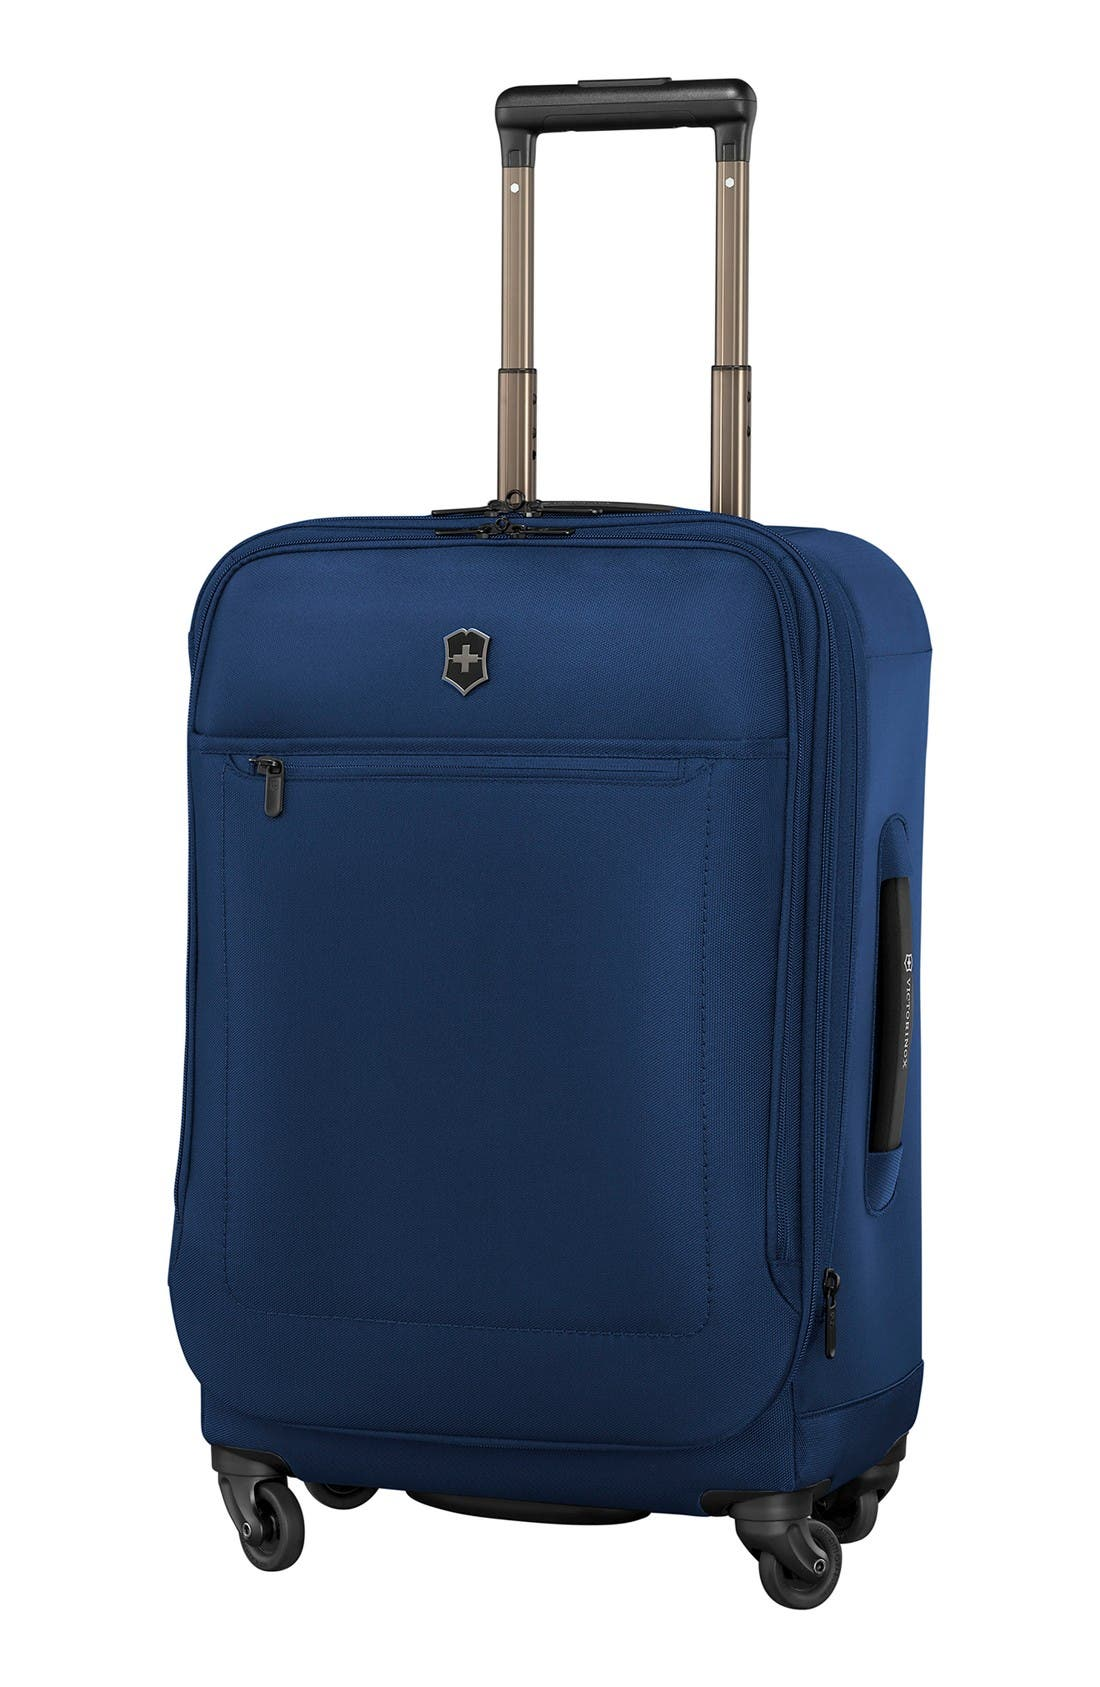 Victorinox Swiss Army® Avolve 3.0 24-Inch Large Carry-On